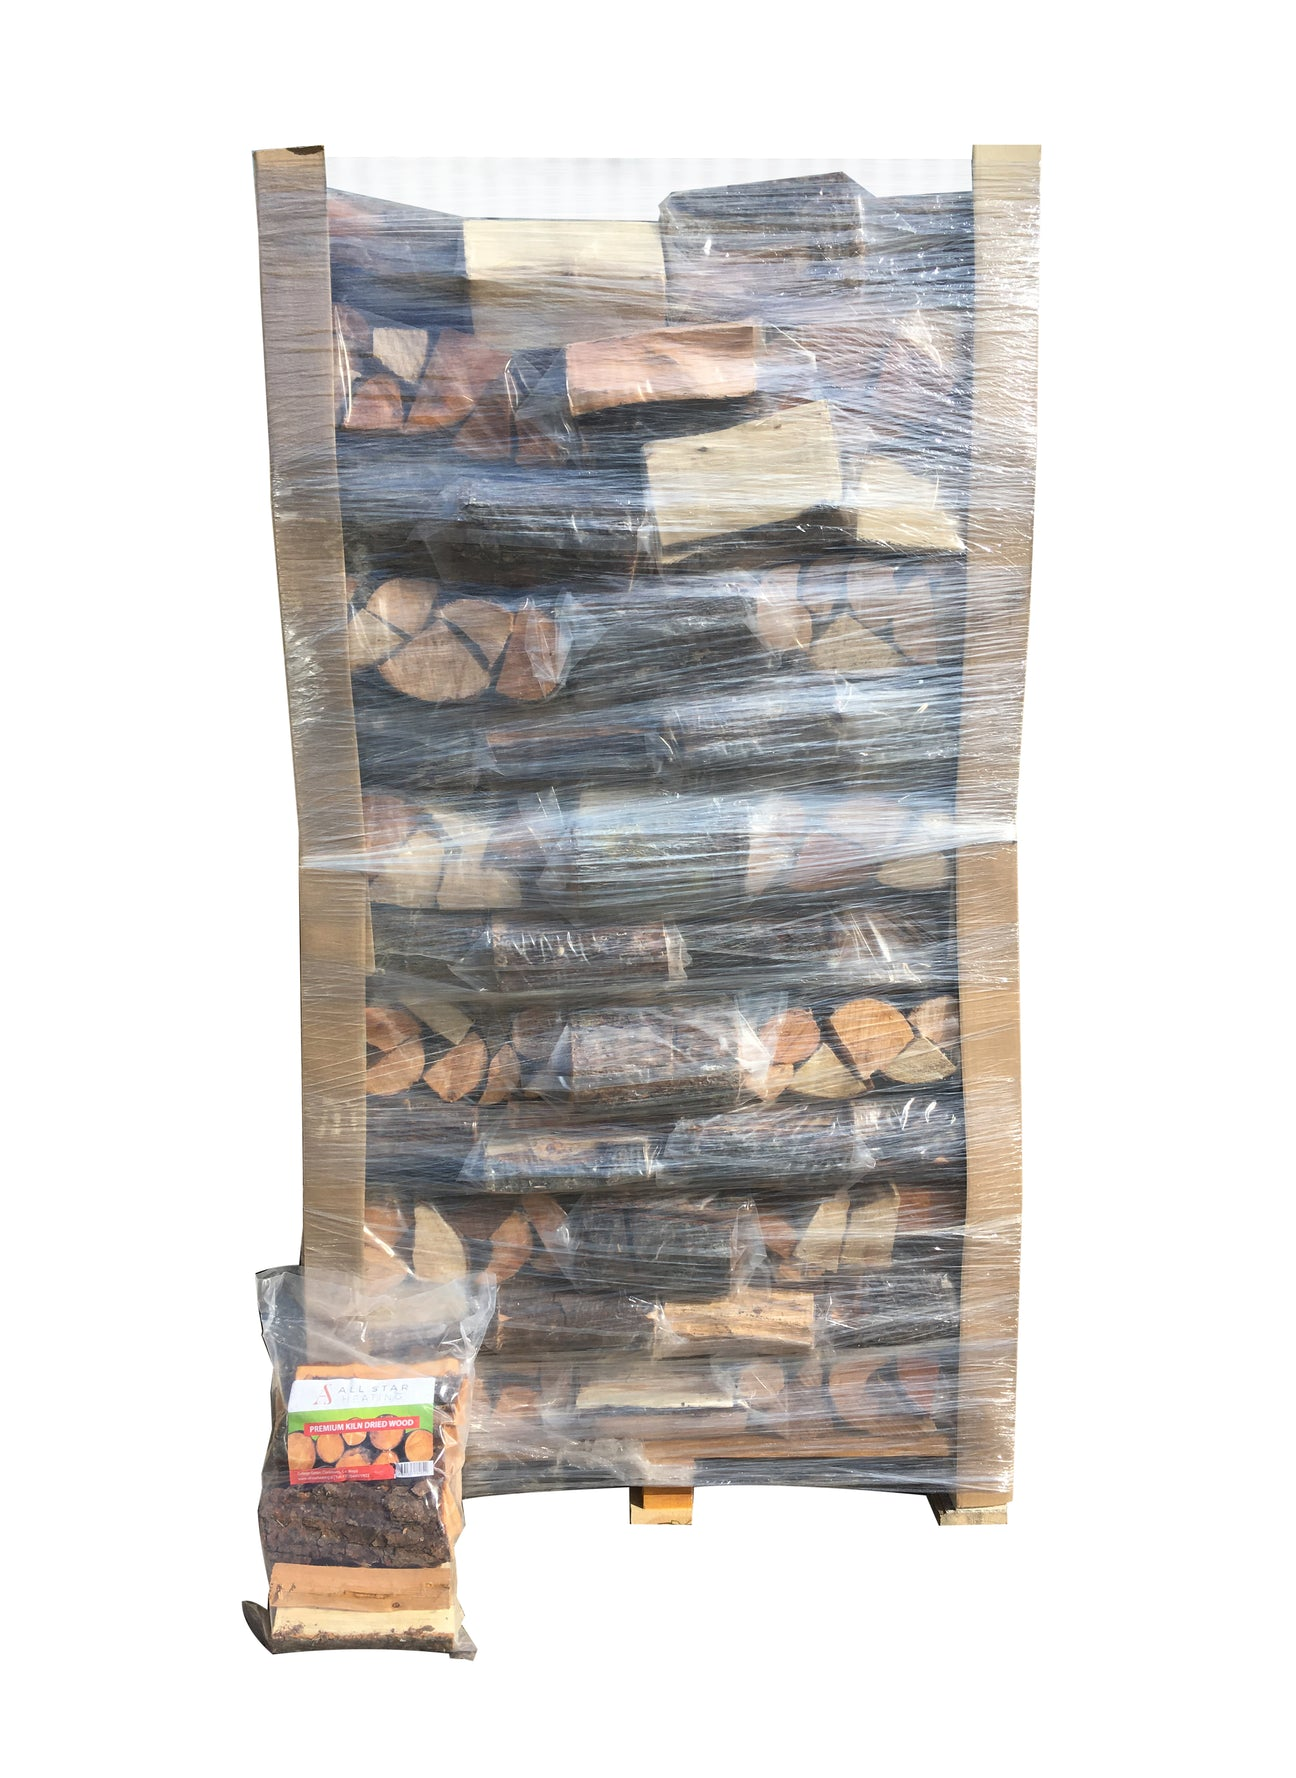 Image of Kiln Dried wood in plastic bags